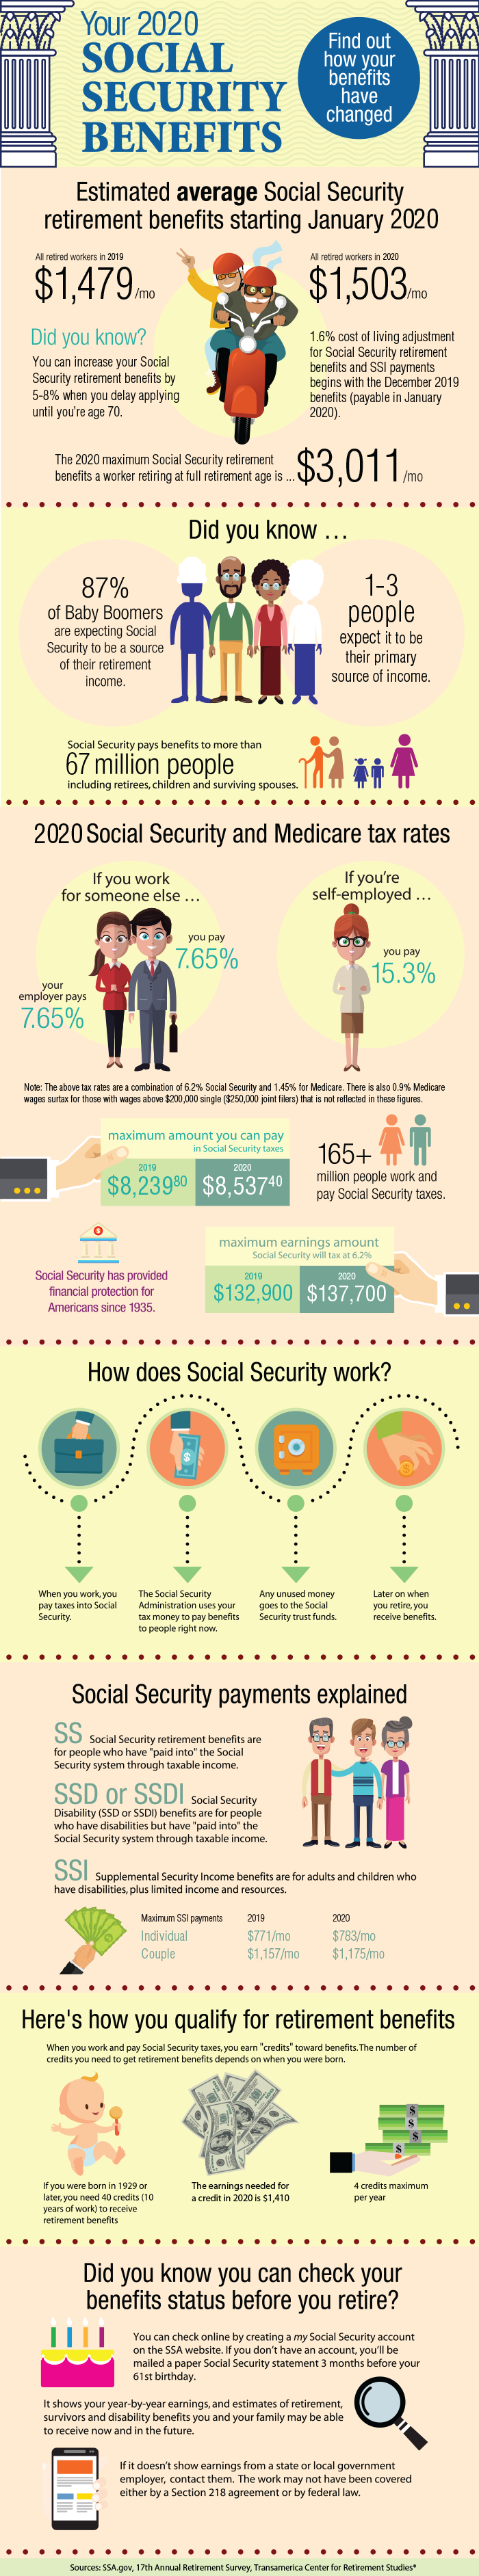 2020 Social Security Benefits image